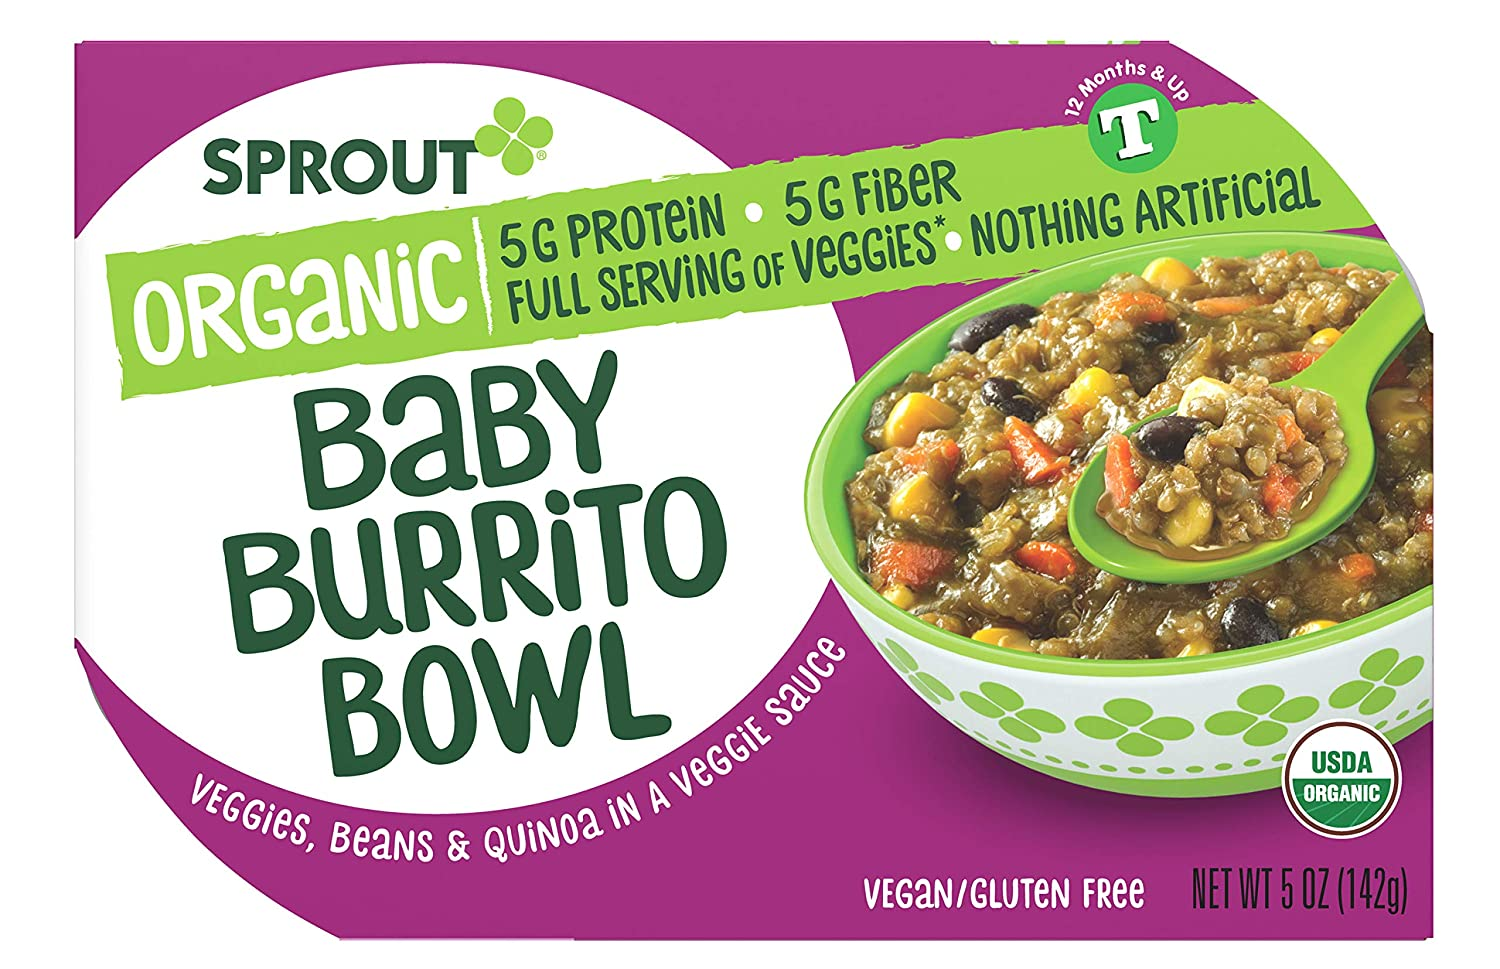 Sprout Organic Toddler Meal Bowl Organic Veggies, Beans and Quinoa In A Veggie Sauce, 5 Oz, Baby Burrito, 1 Count